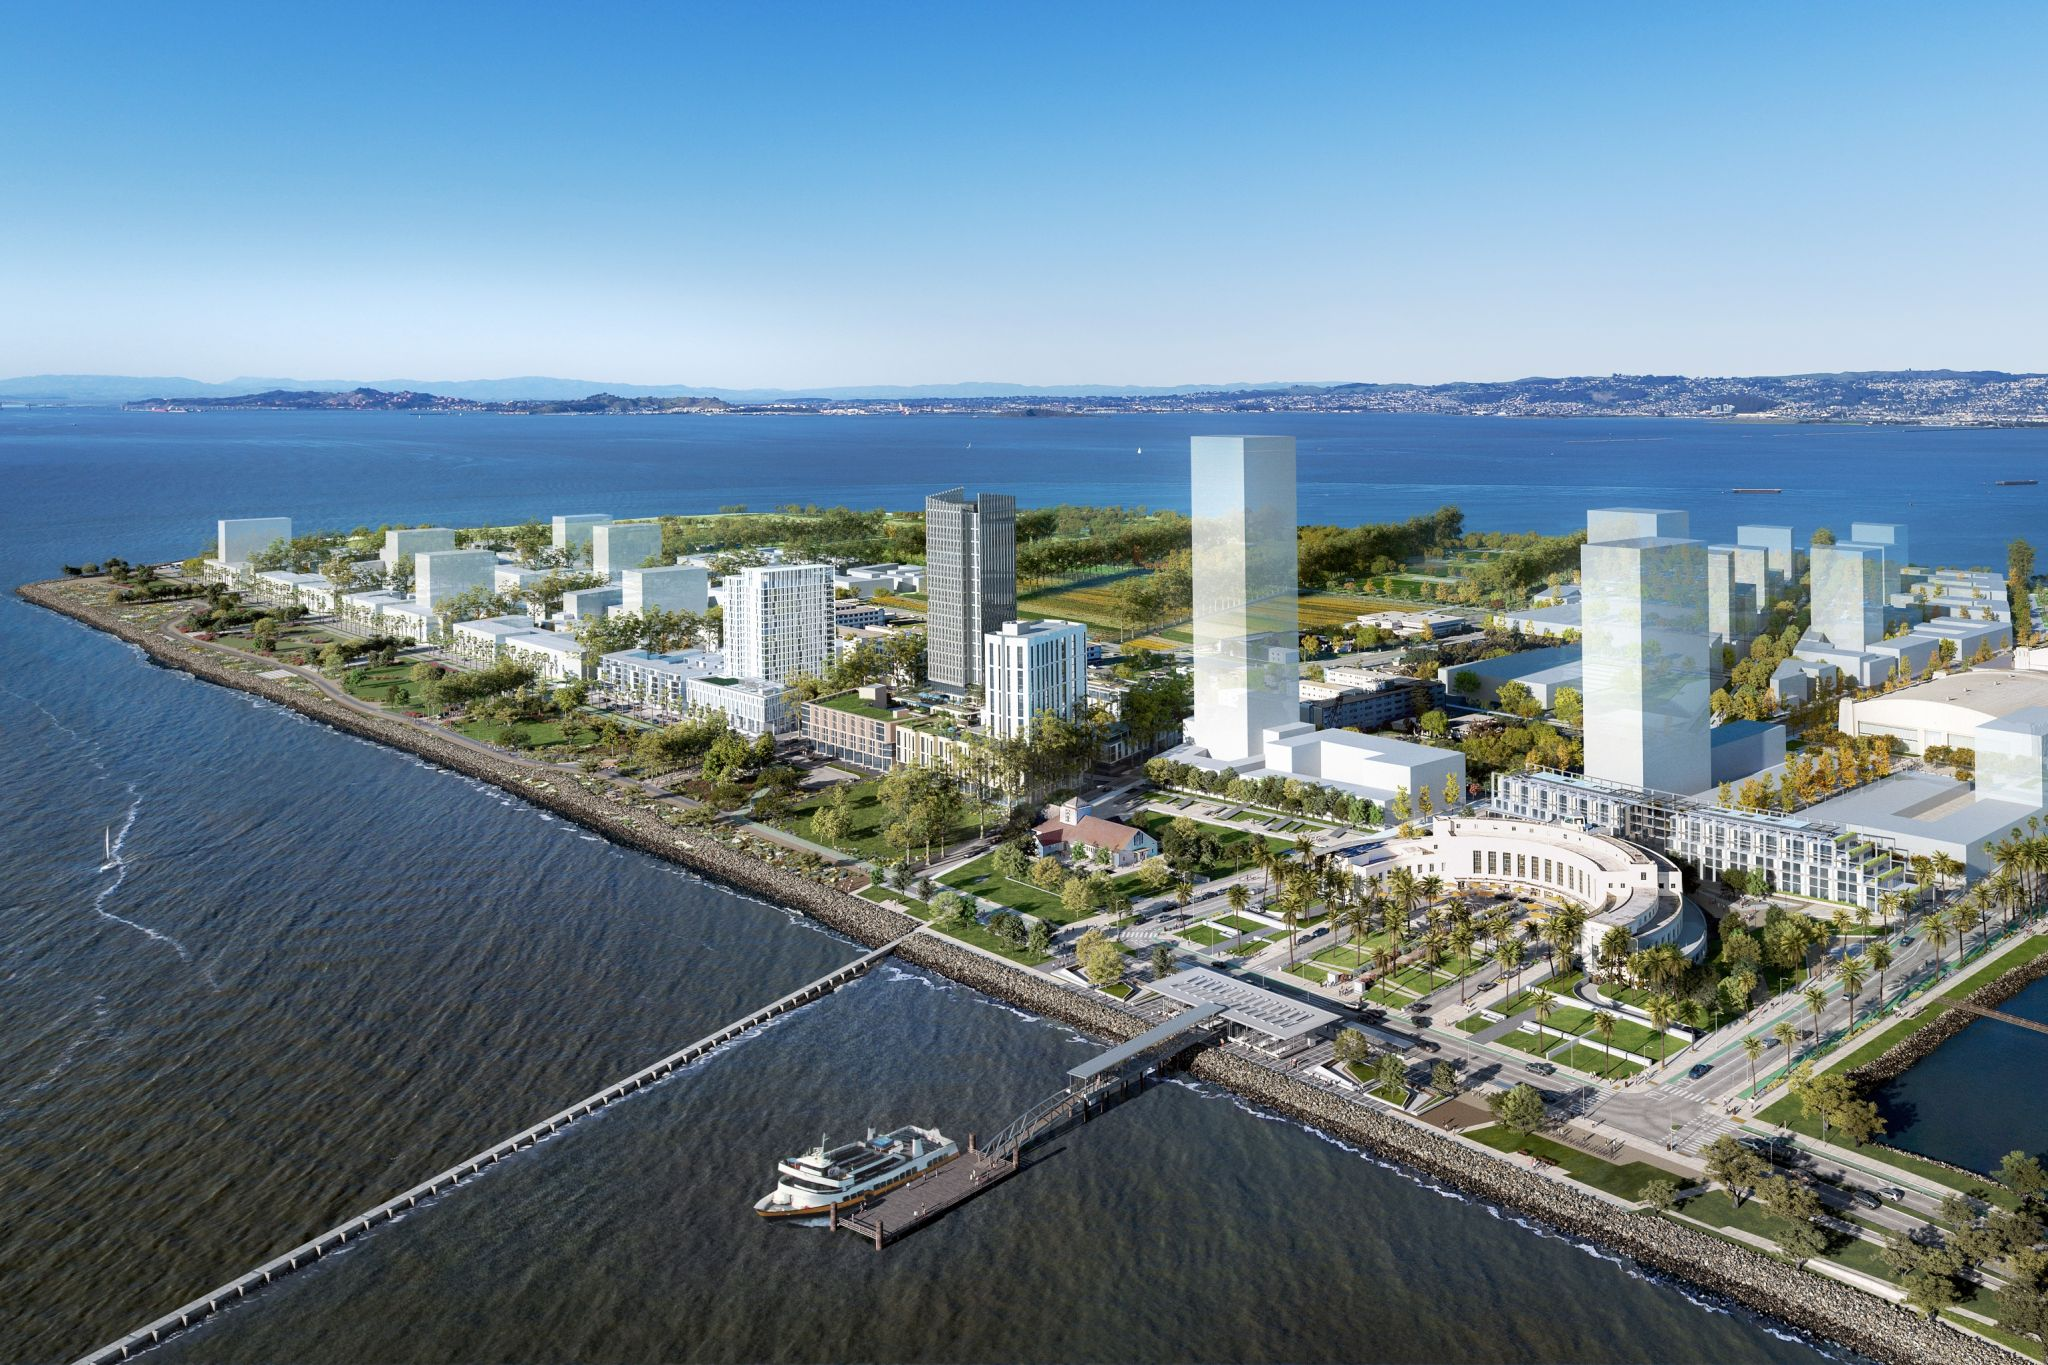 'An entirely new community of 8,000 homes': What Treasure Island will look like in 20 years